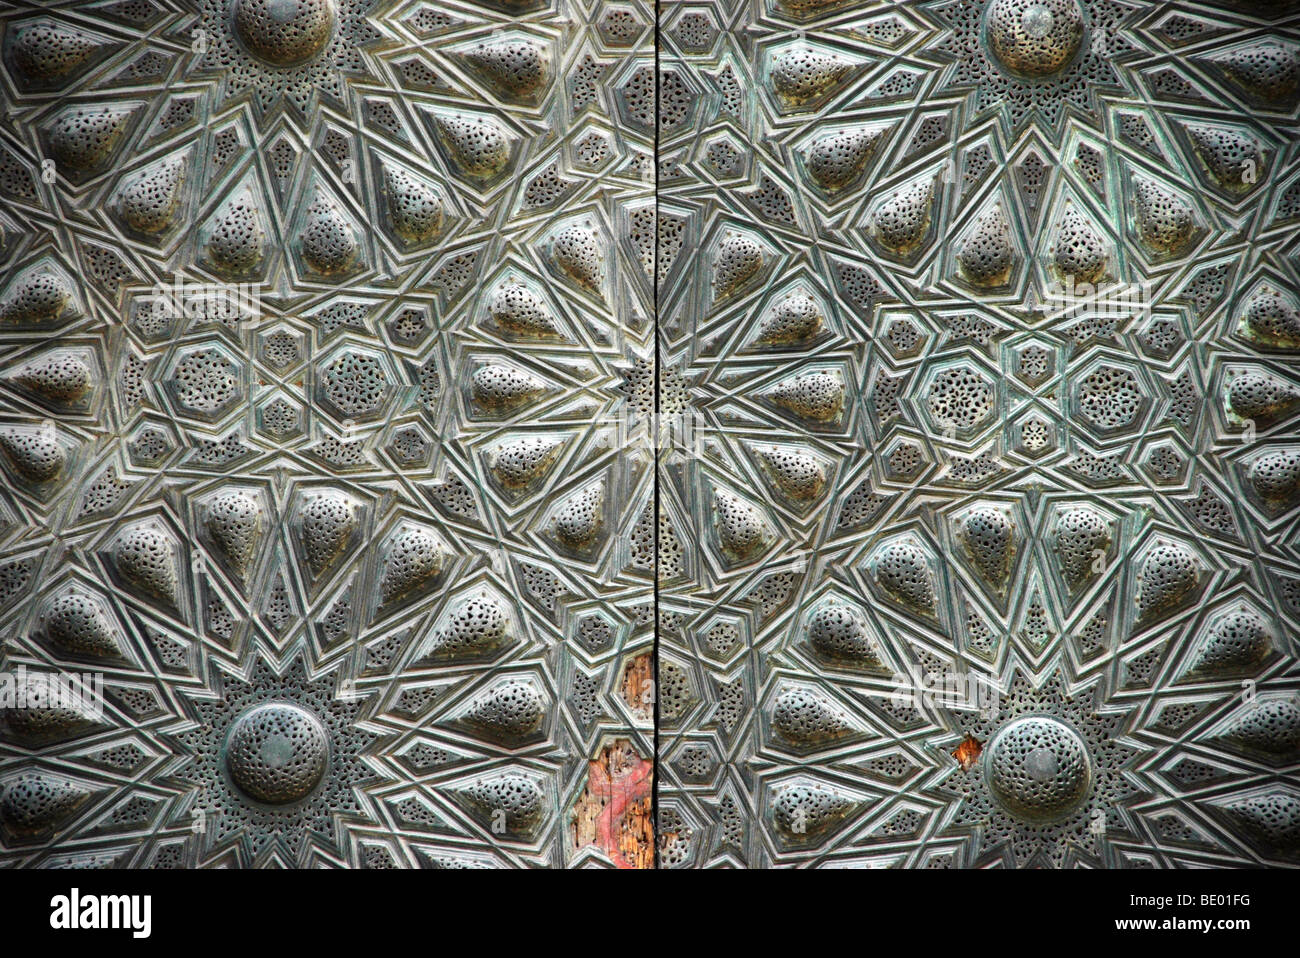 Metallic bronze Islamic geometric motifs on a wooden door in the Mosque of Sultan al-Muayyad in the medieval quarter - Stock Image